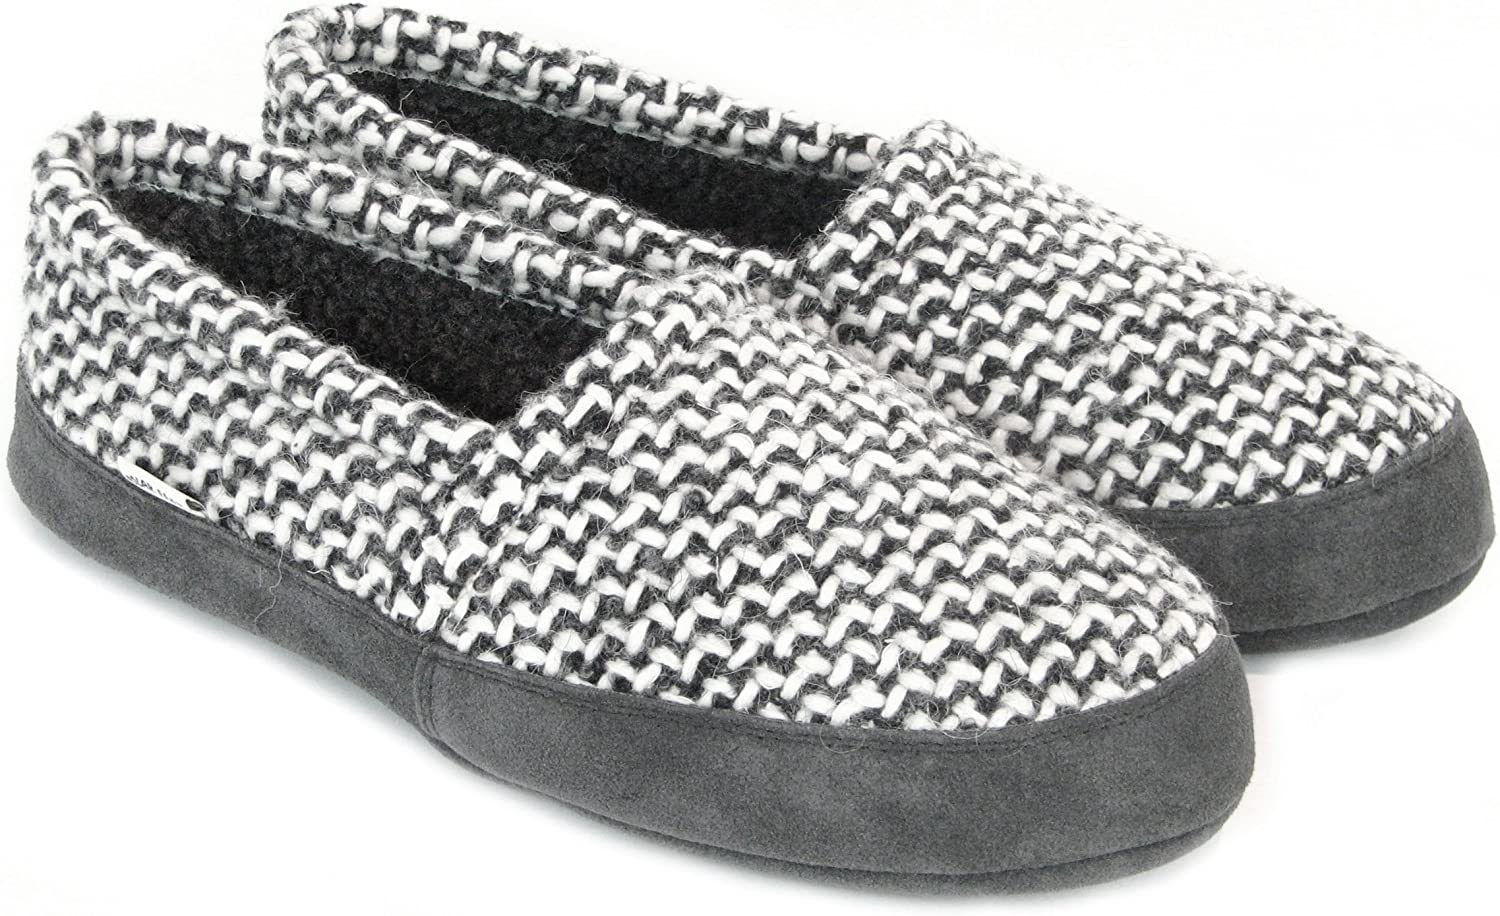 Polar Feet Perfect Mocs Slippers for Women in Grey Wool Weave